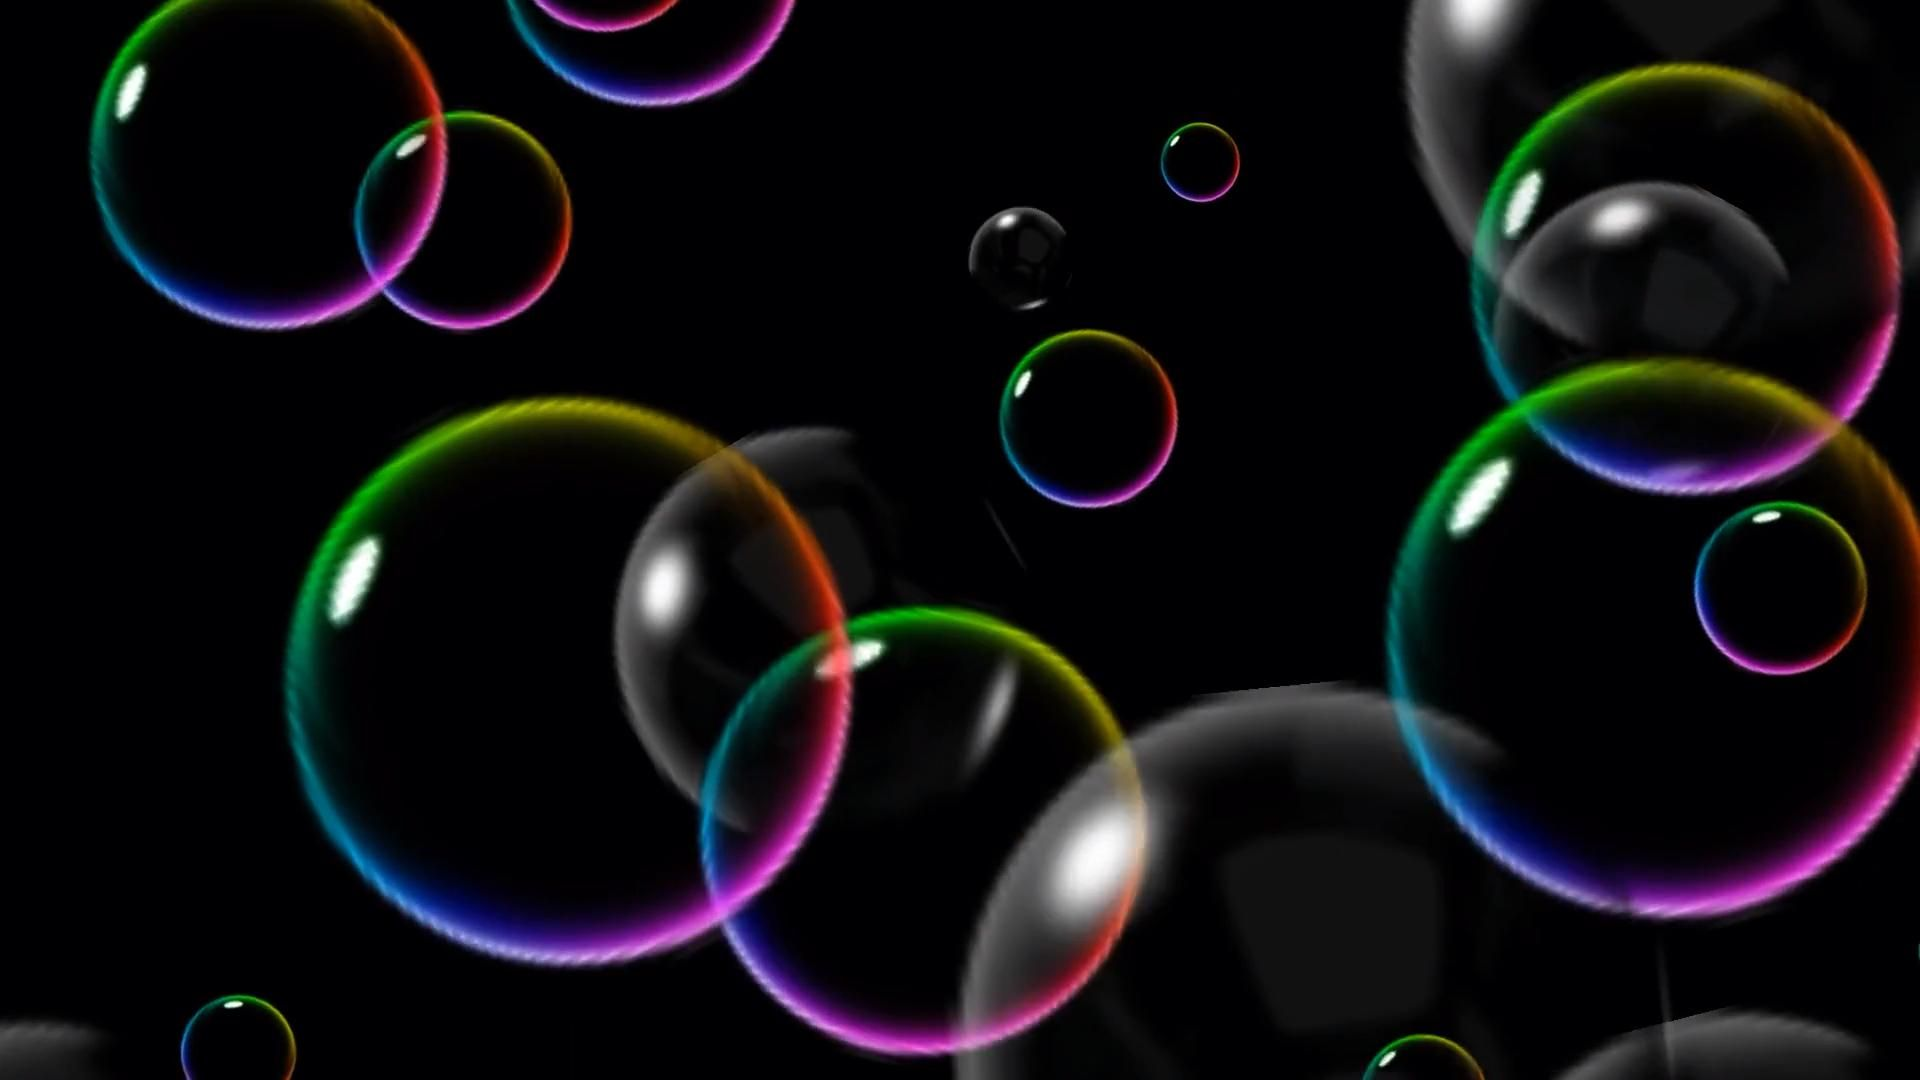 Free Motion Graphic Virtual Background Neon Rainbow Floating Bubbles Vj Loop Video Motion Wallpapers Bubbles Bubbles Wallpaper